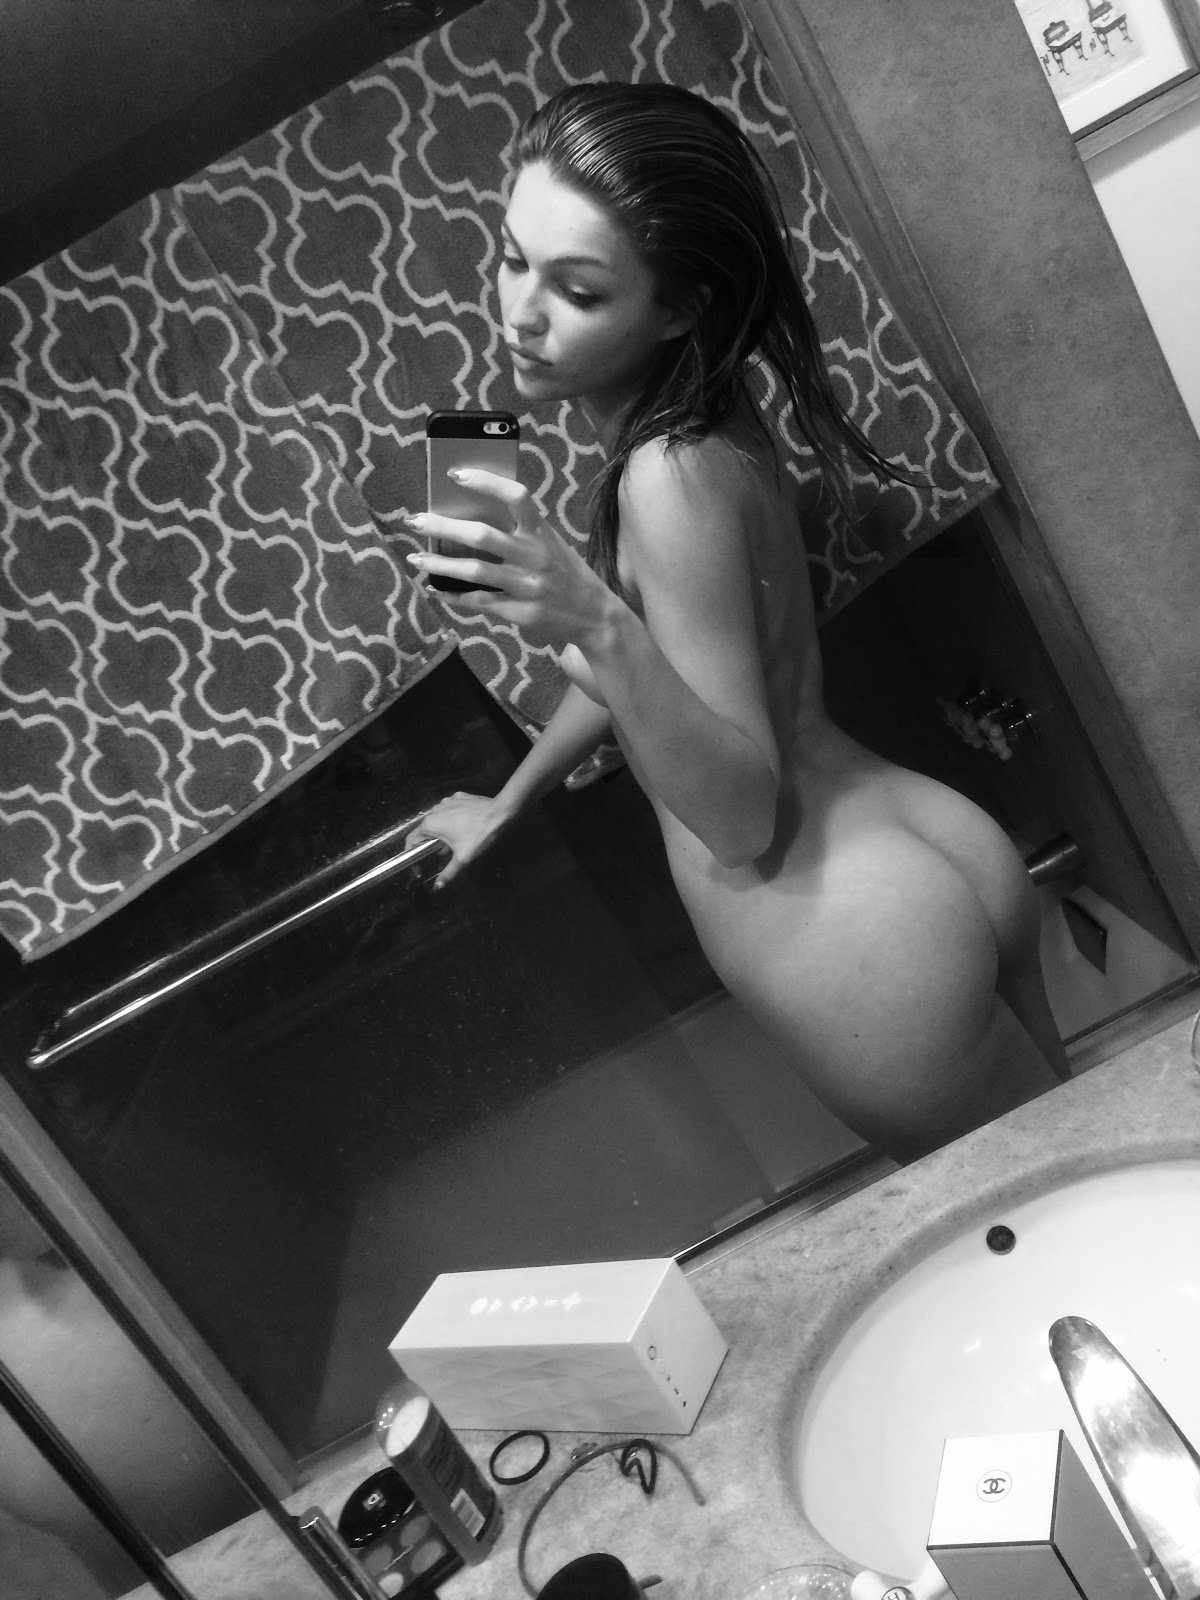 Lili Simmons black and white photo fully naked